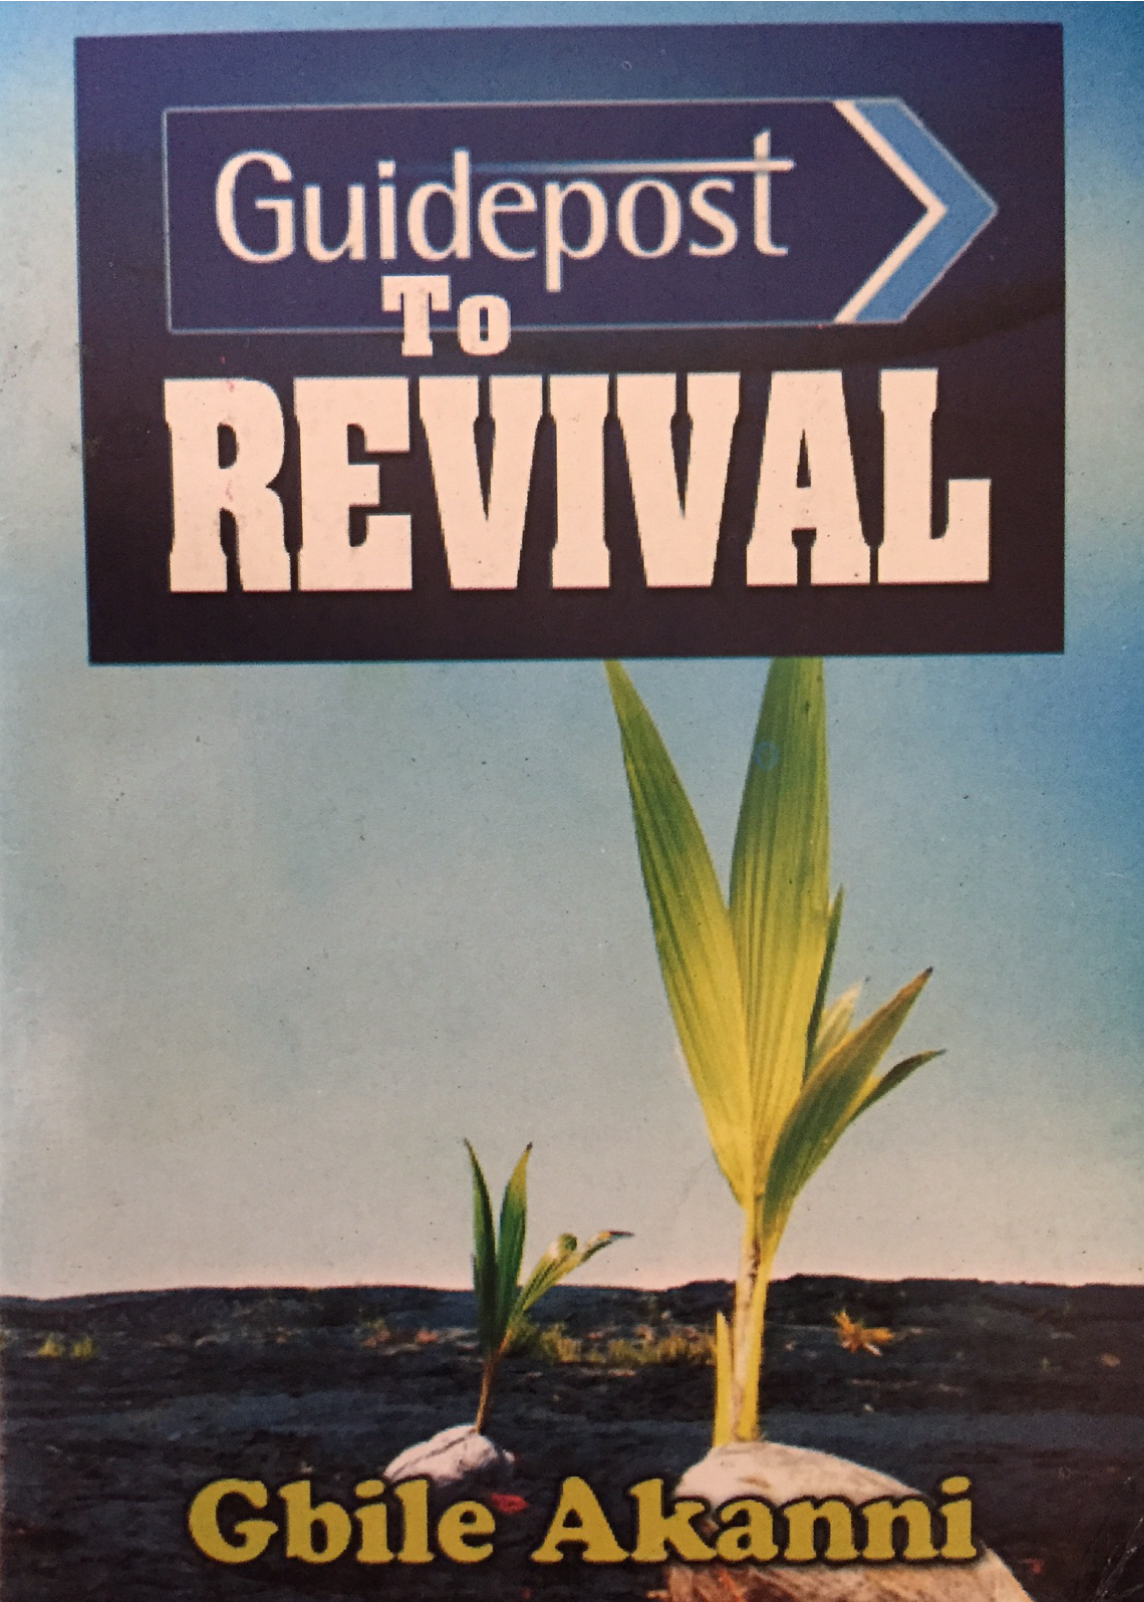 Guidepost To Revival PB - Gbile Akanni